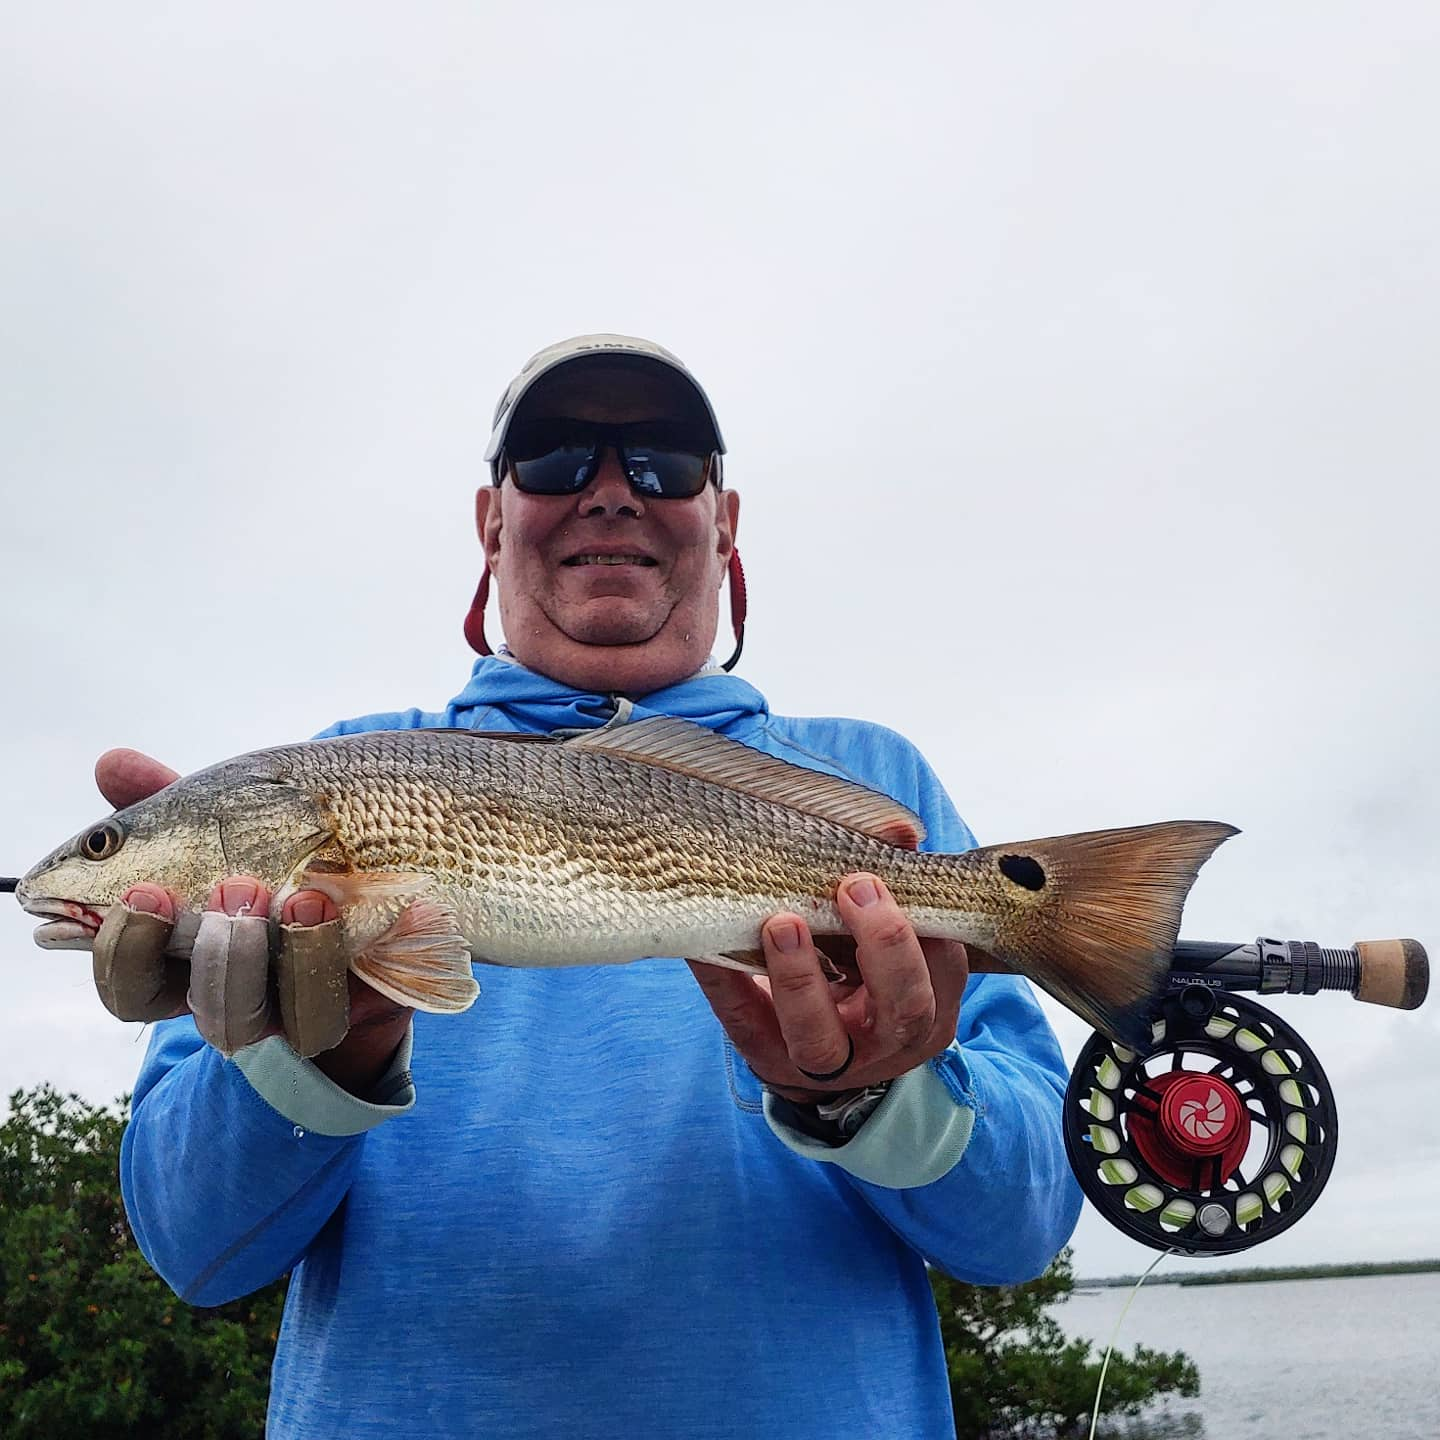 Captain John Tarr|Fishing Charter|Fishing Guide|Tailhunter Outdoor Adventures